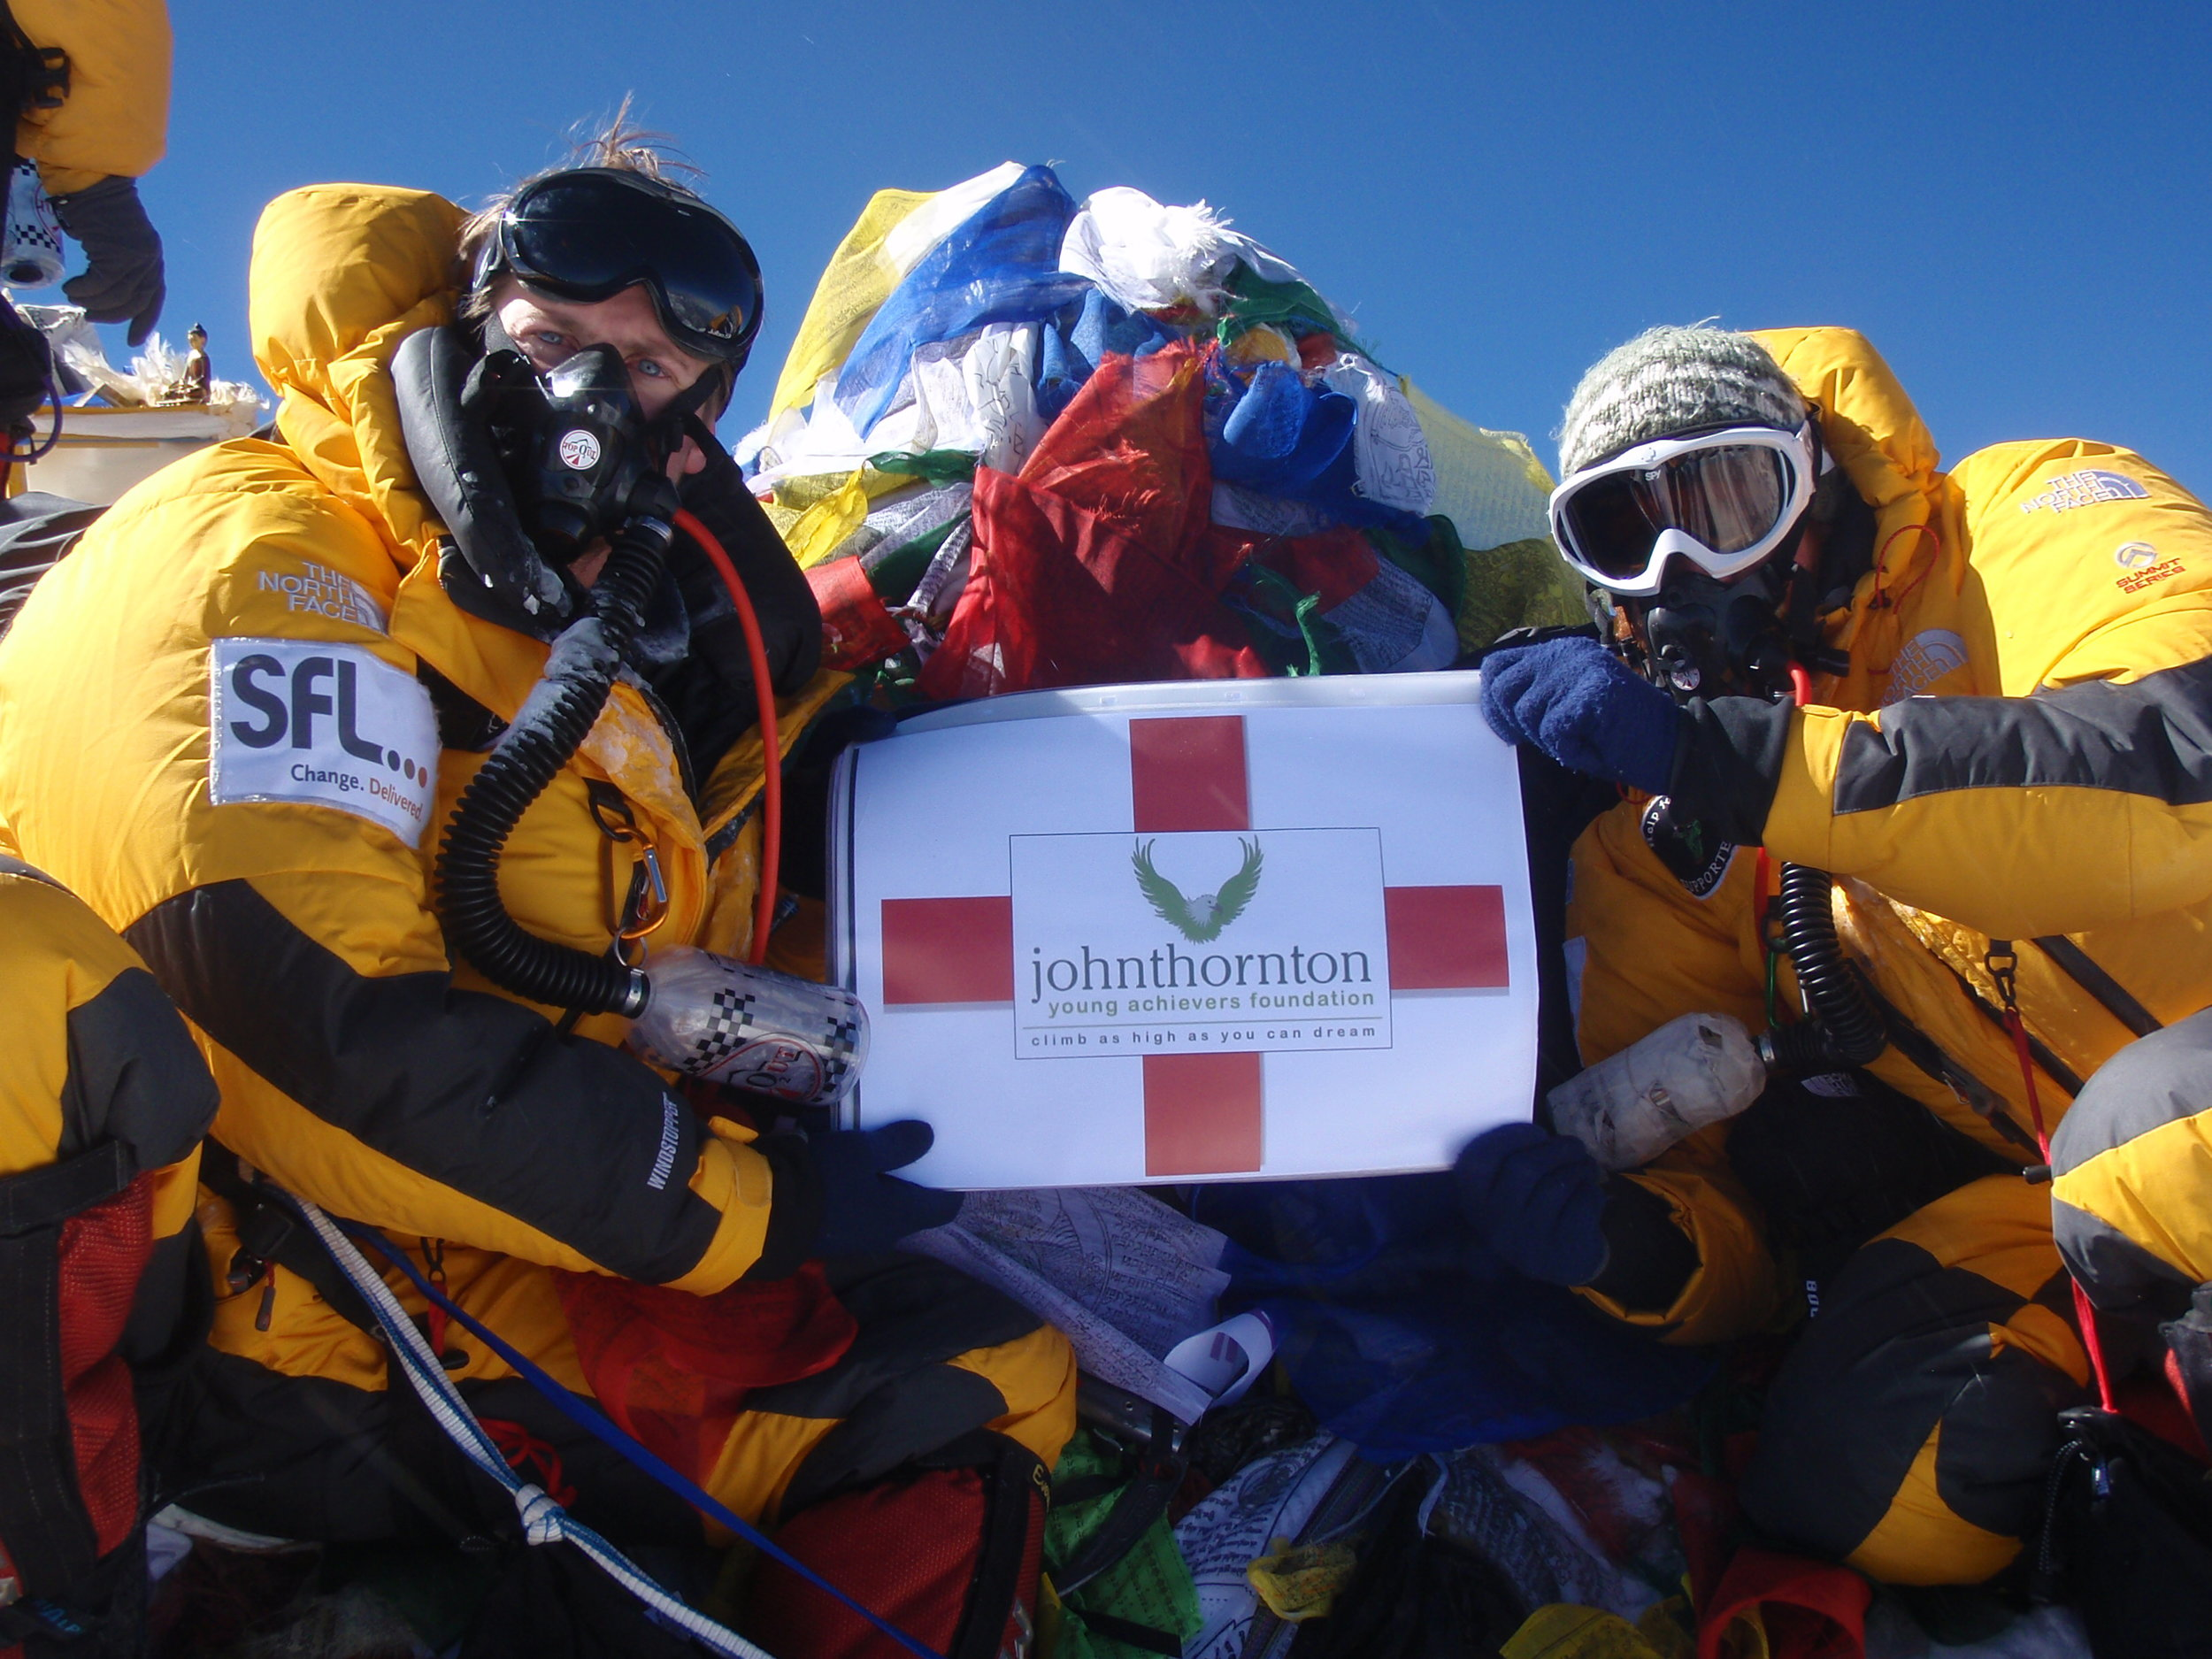 John's good friends, Matt Snook and Pete Sunnucks, on top of the world! They successfully summitted Mount Everest in 2010 raising over £25,000 for the JTYAF and Help for Heroes.